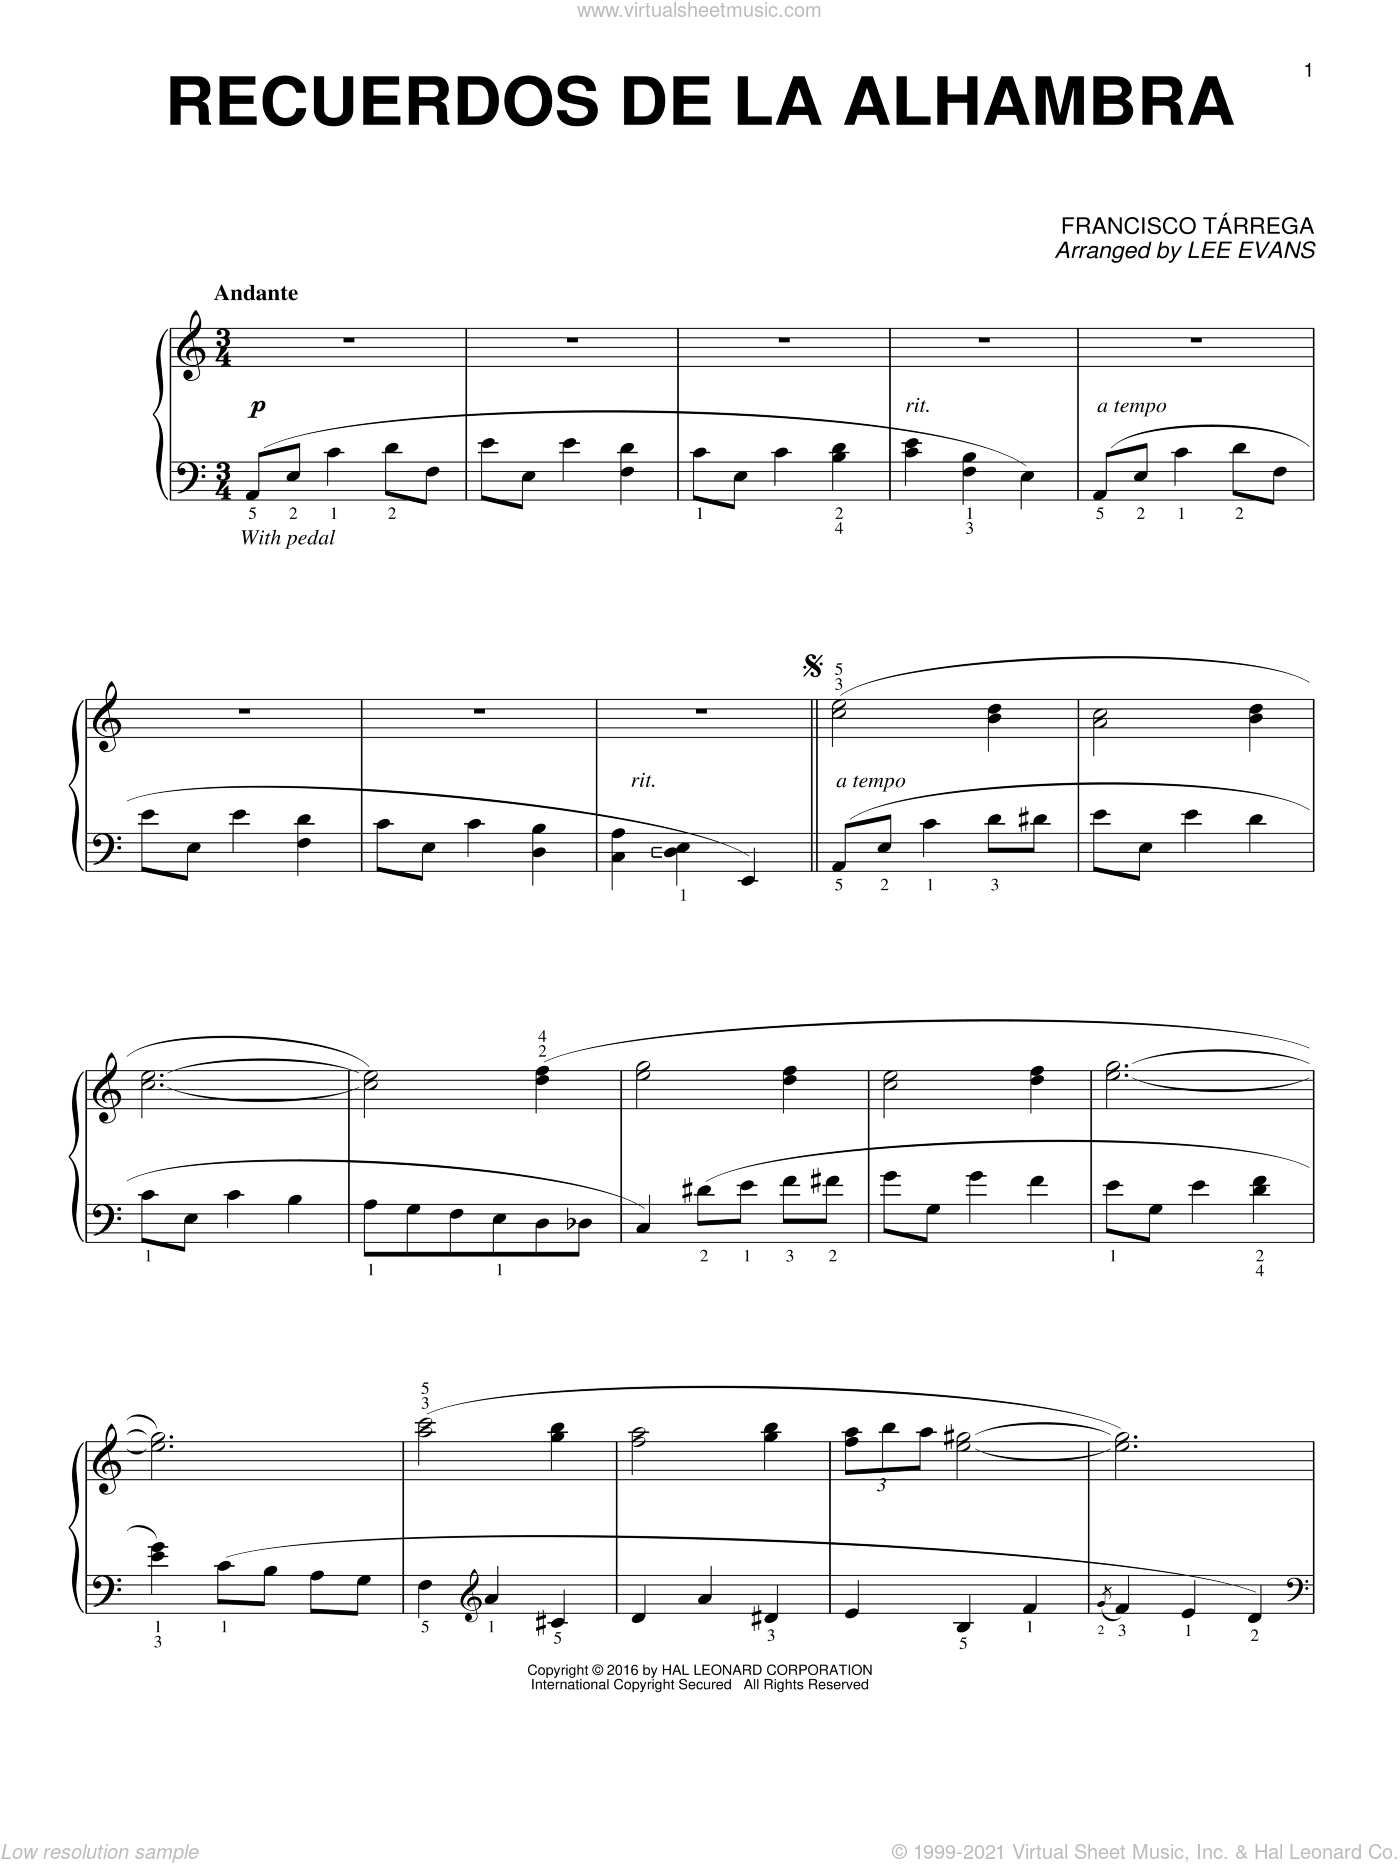 Recuerdos de la Alhambra sheet music for piano solo by Francisco Tarrega and Lee Evans, classical score, intermediate skill level